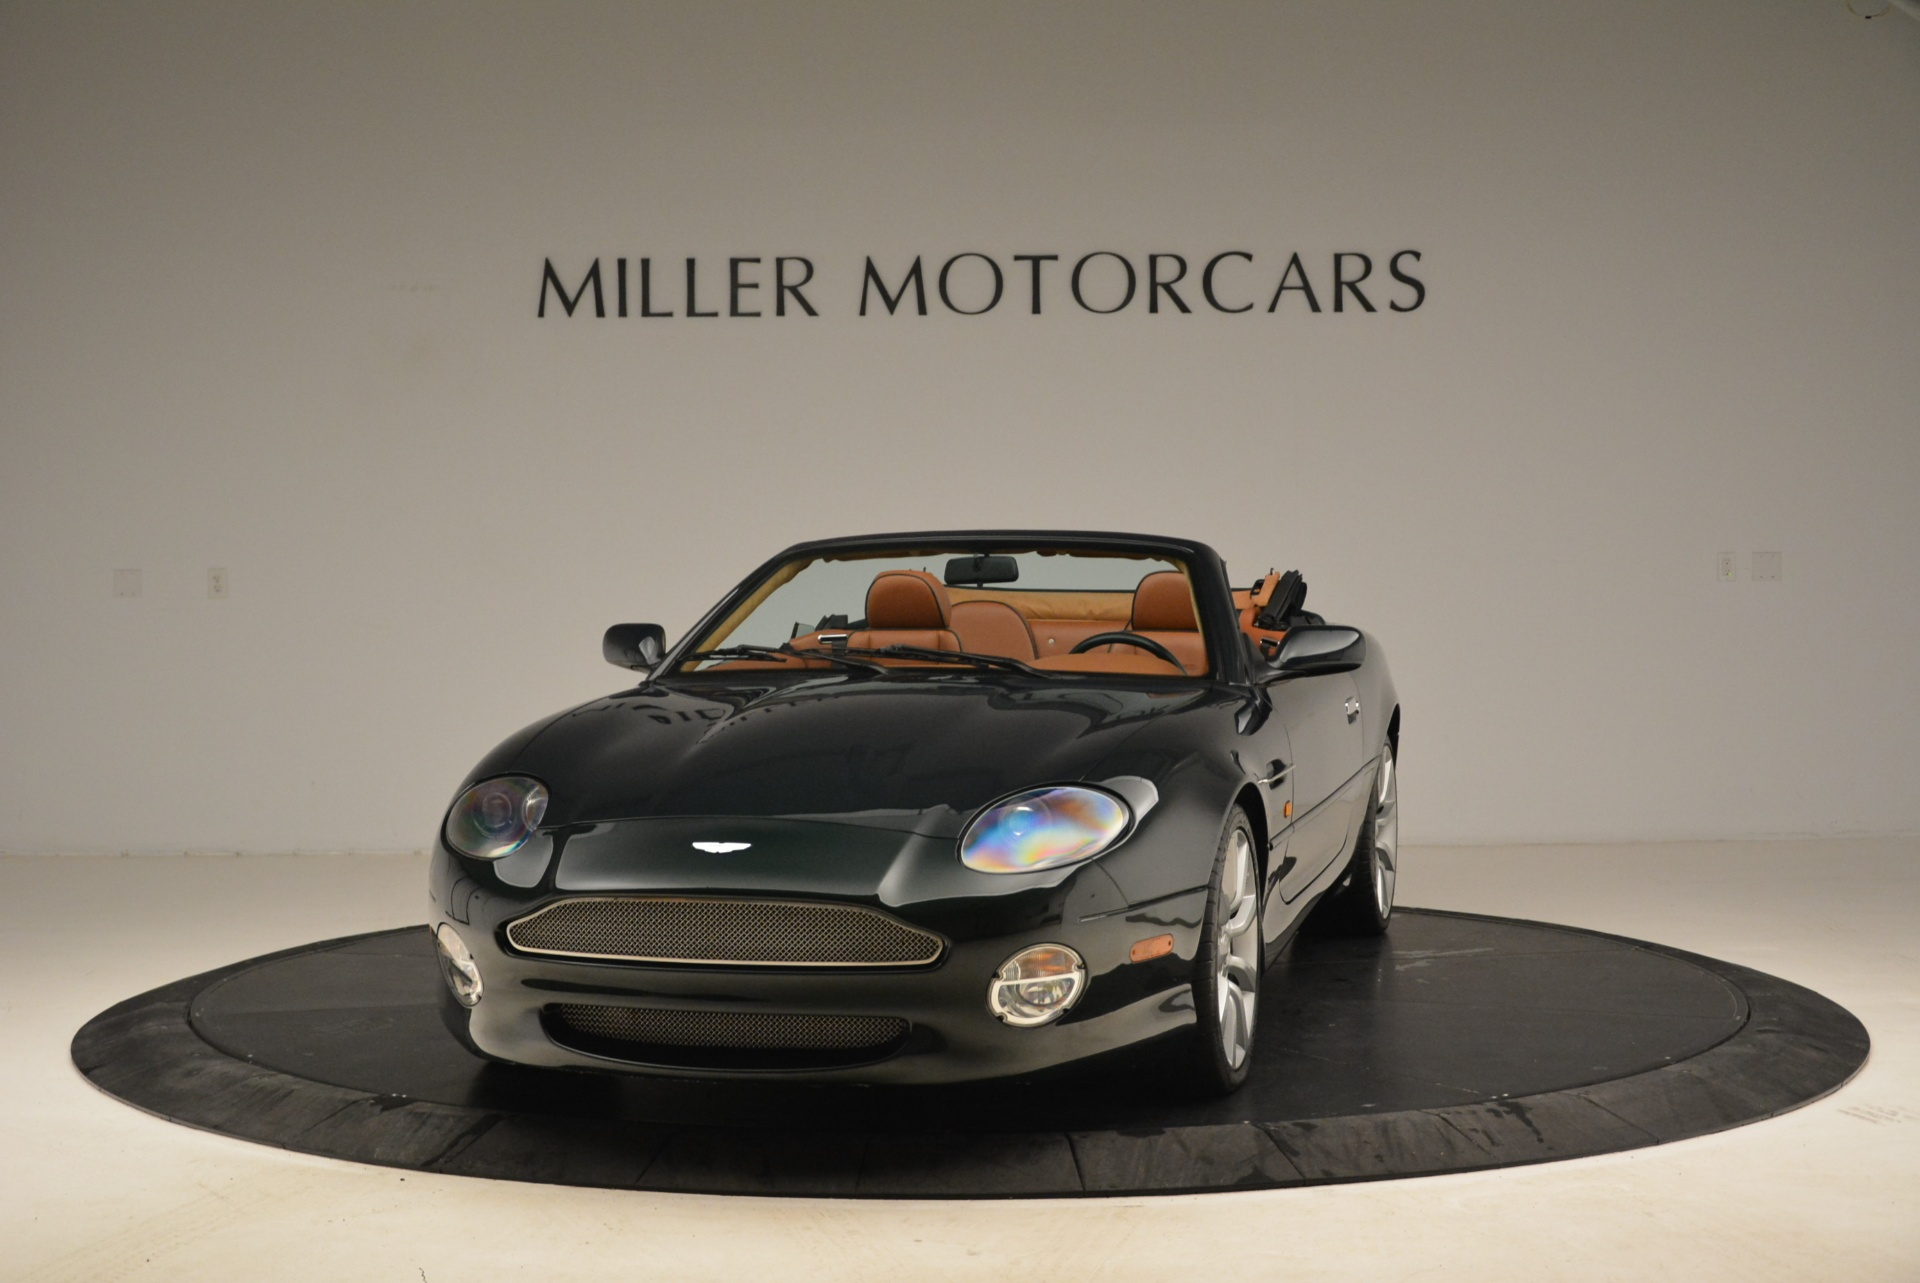 Used 2003 Aston Martin DB7 Vantage Volante for sale Sold at Bentley Greenwich in Greenwich CT 06830 1